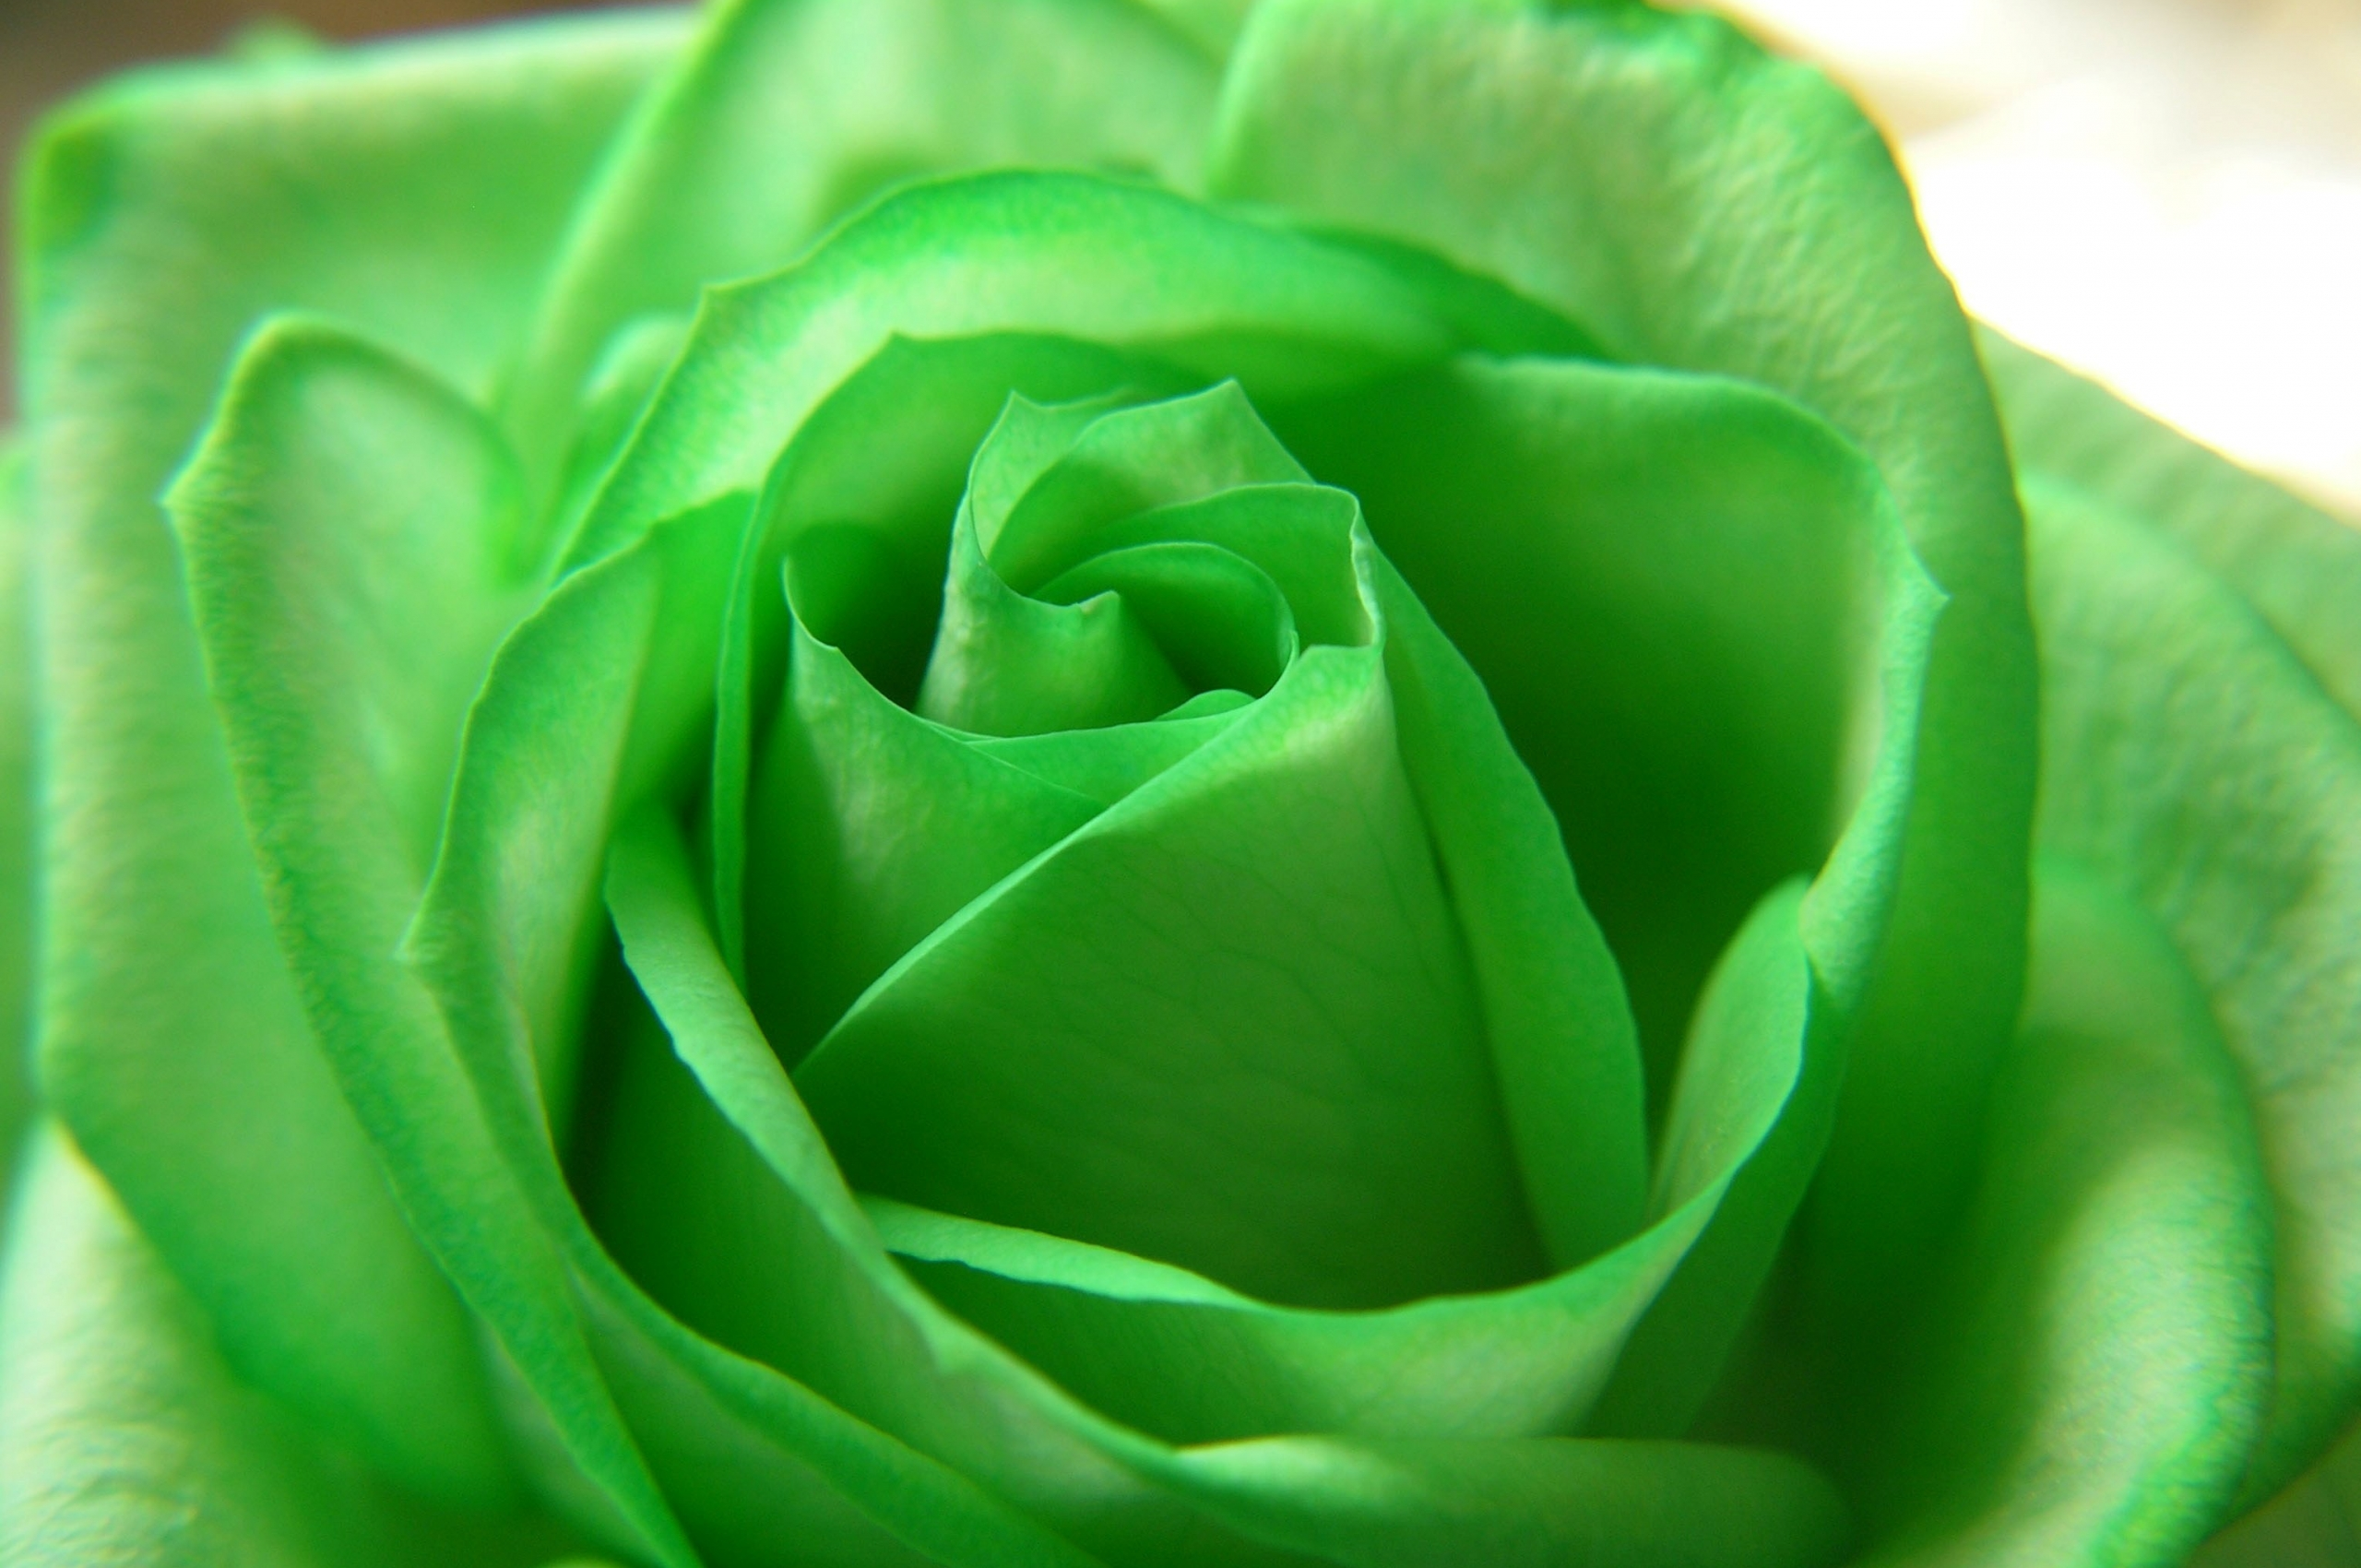 Rose Green Flower Beautiful Nature Wallpapers Rose - Rose Full Hd Wallpapers Flower For Desktop , HD Wallpaper & Backgrounds